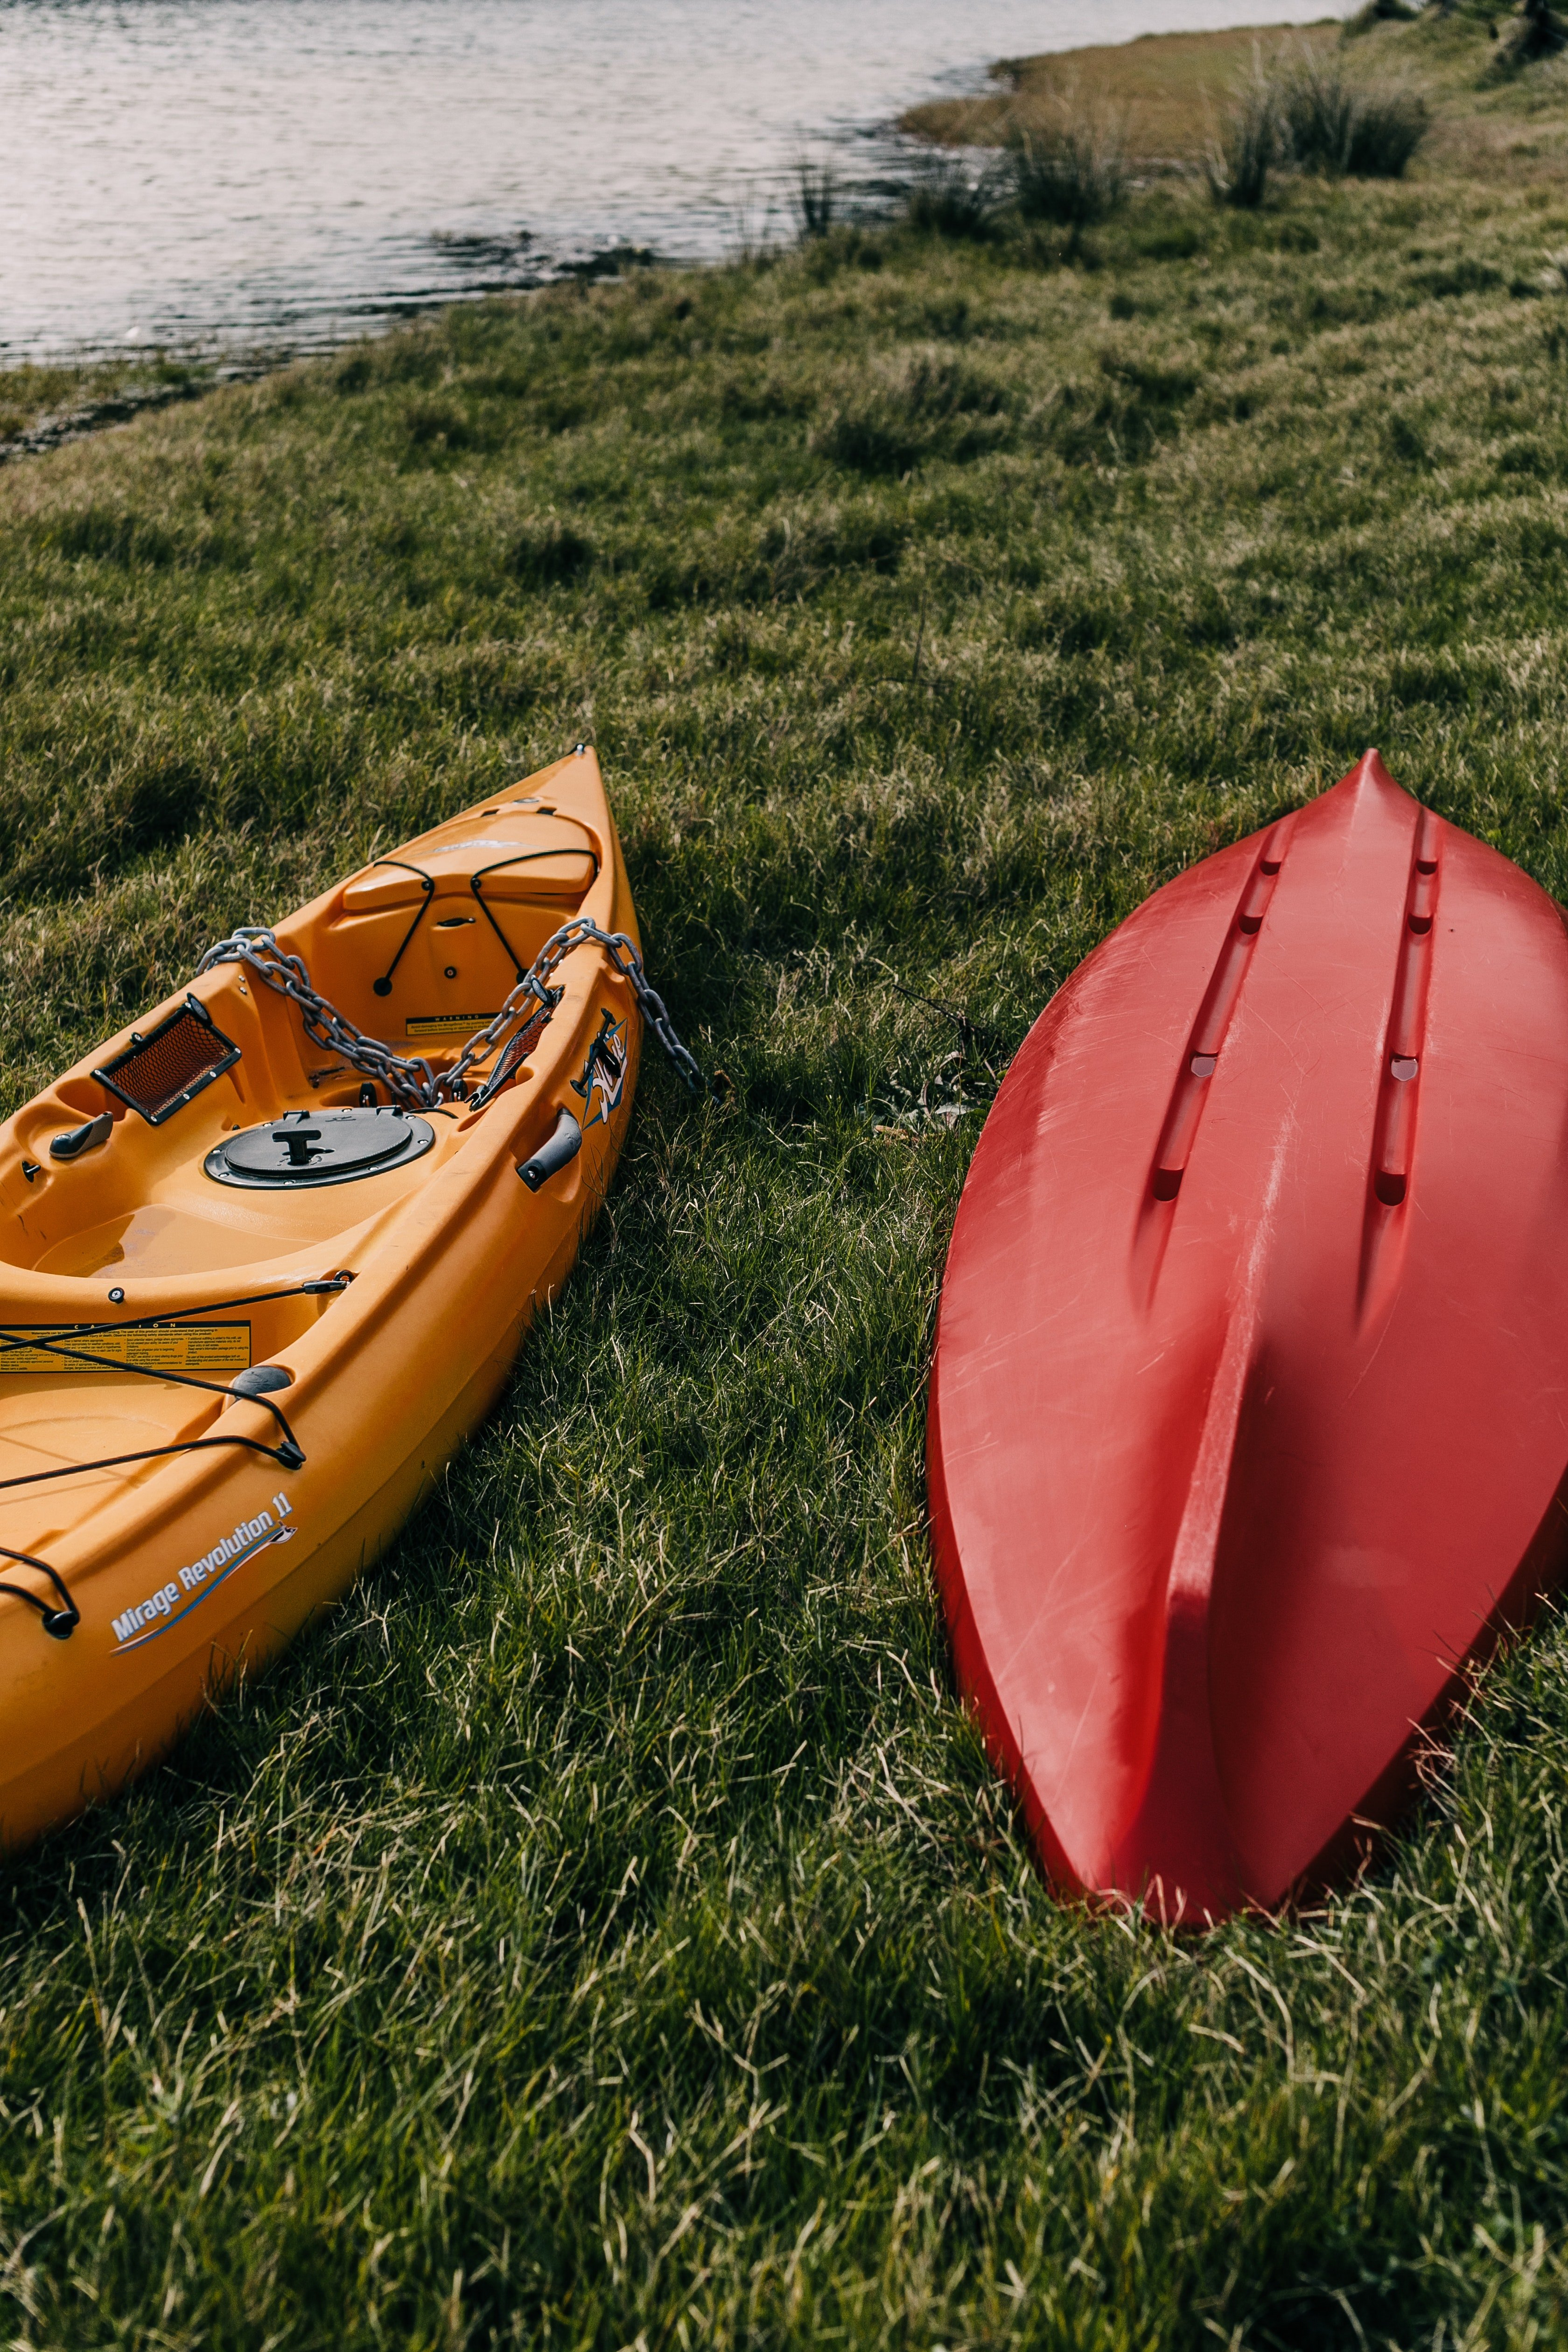 A red and yellow canoe lying on the grass. | Photo: pexels